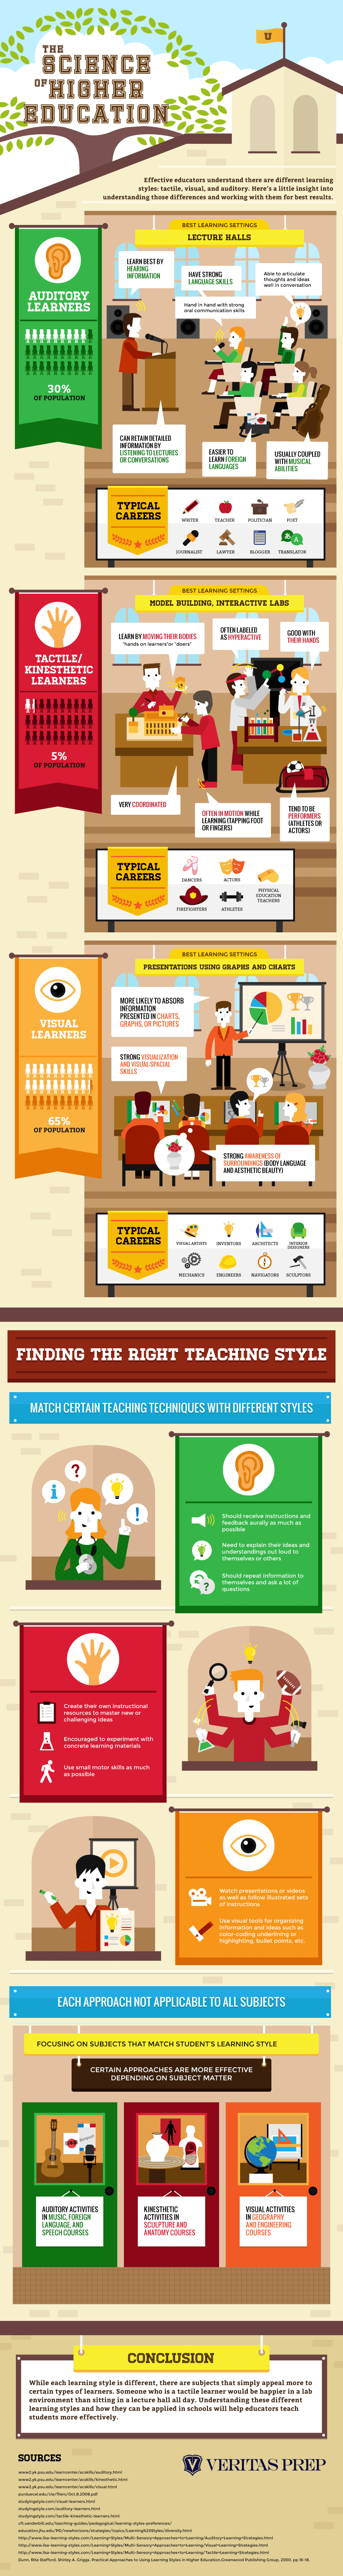 The Science of Higher Education Infographic